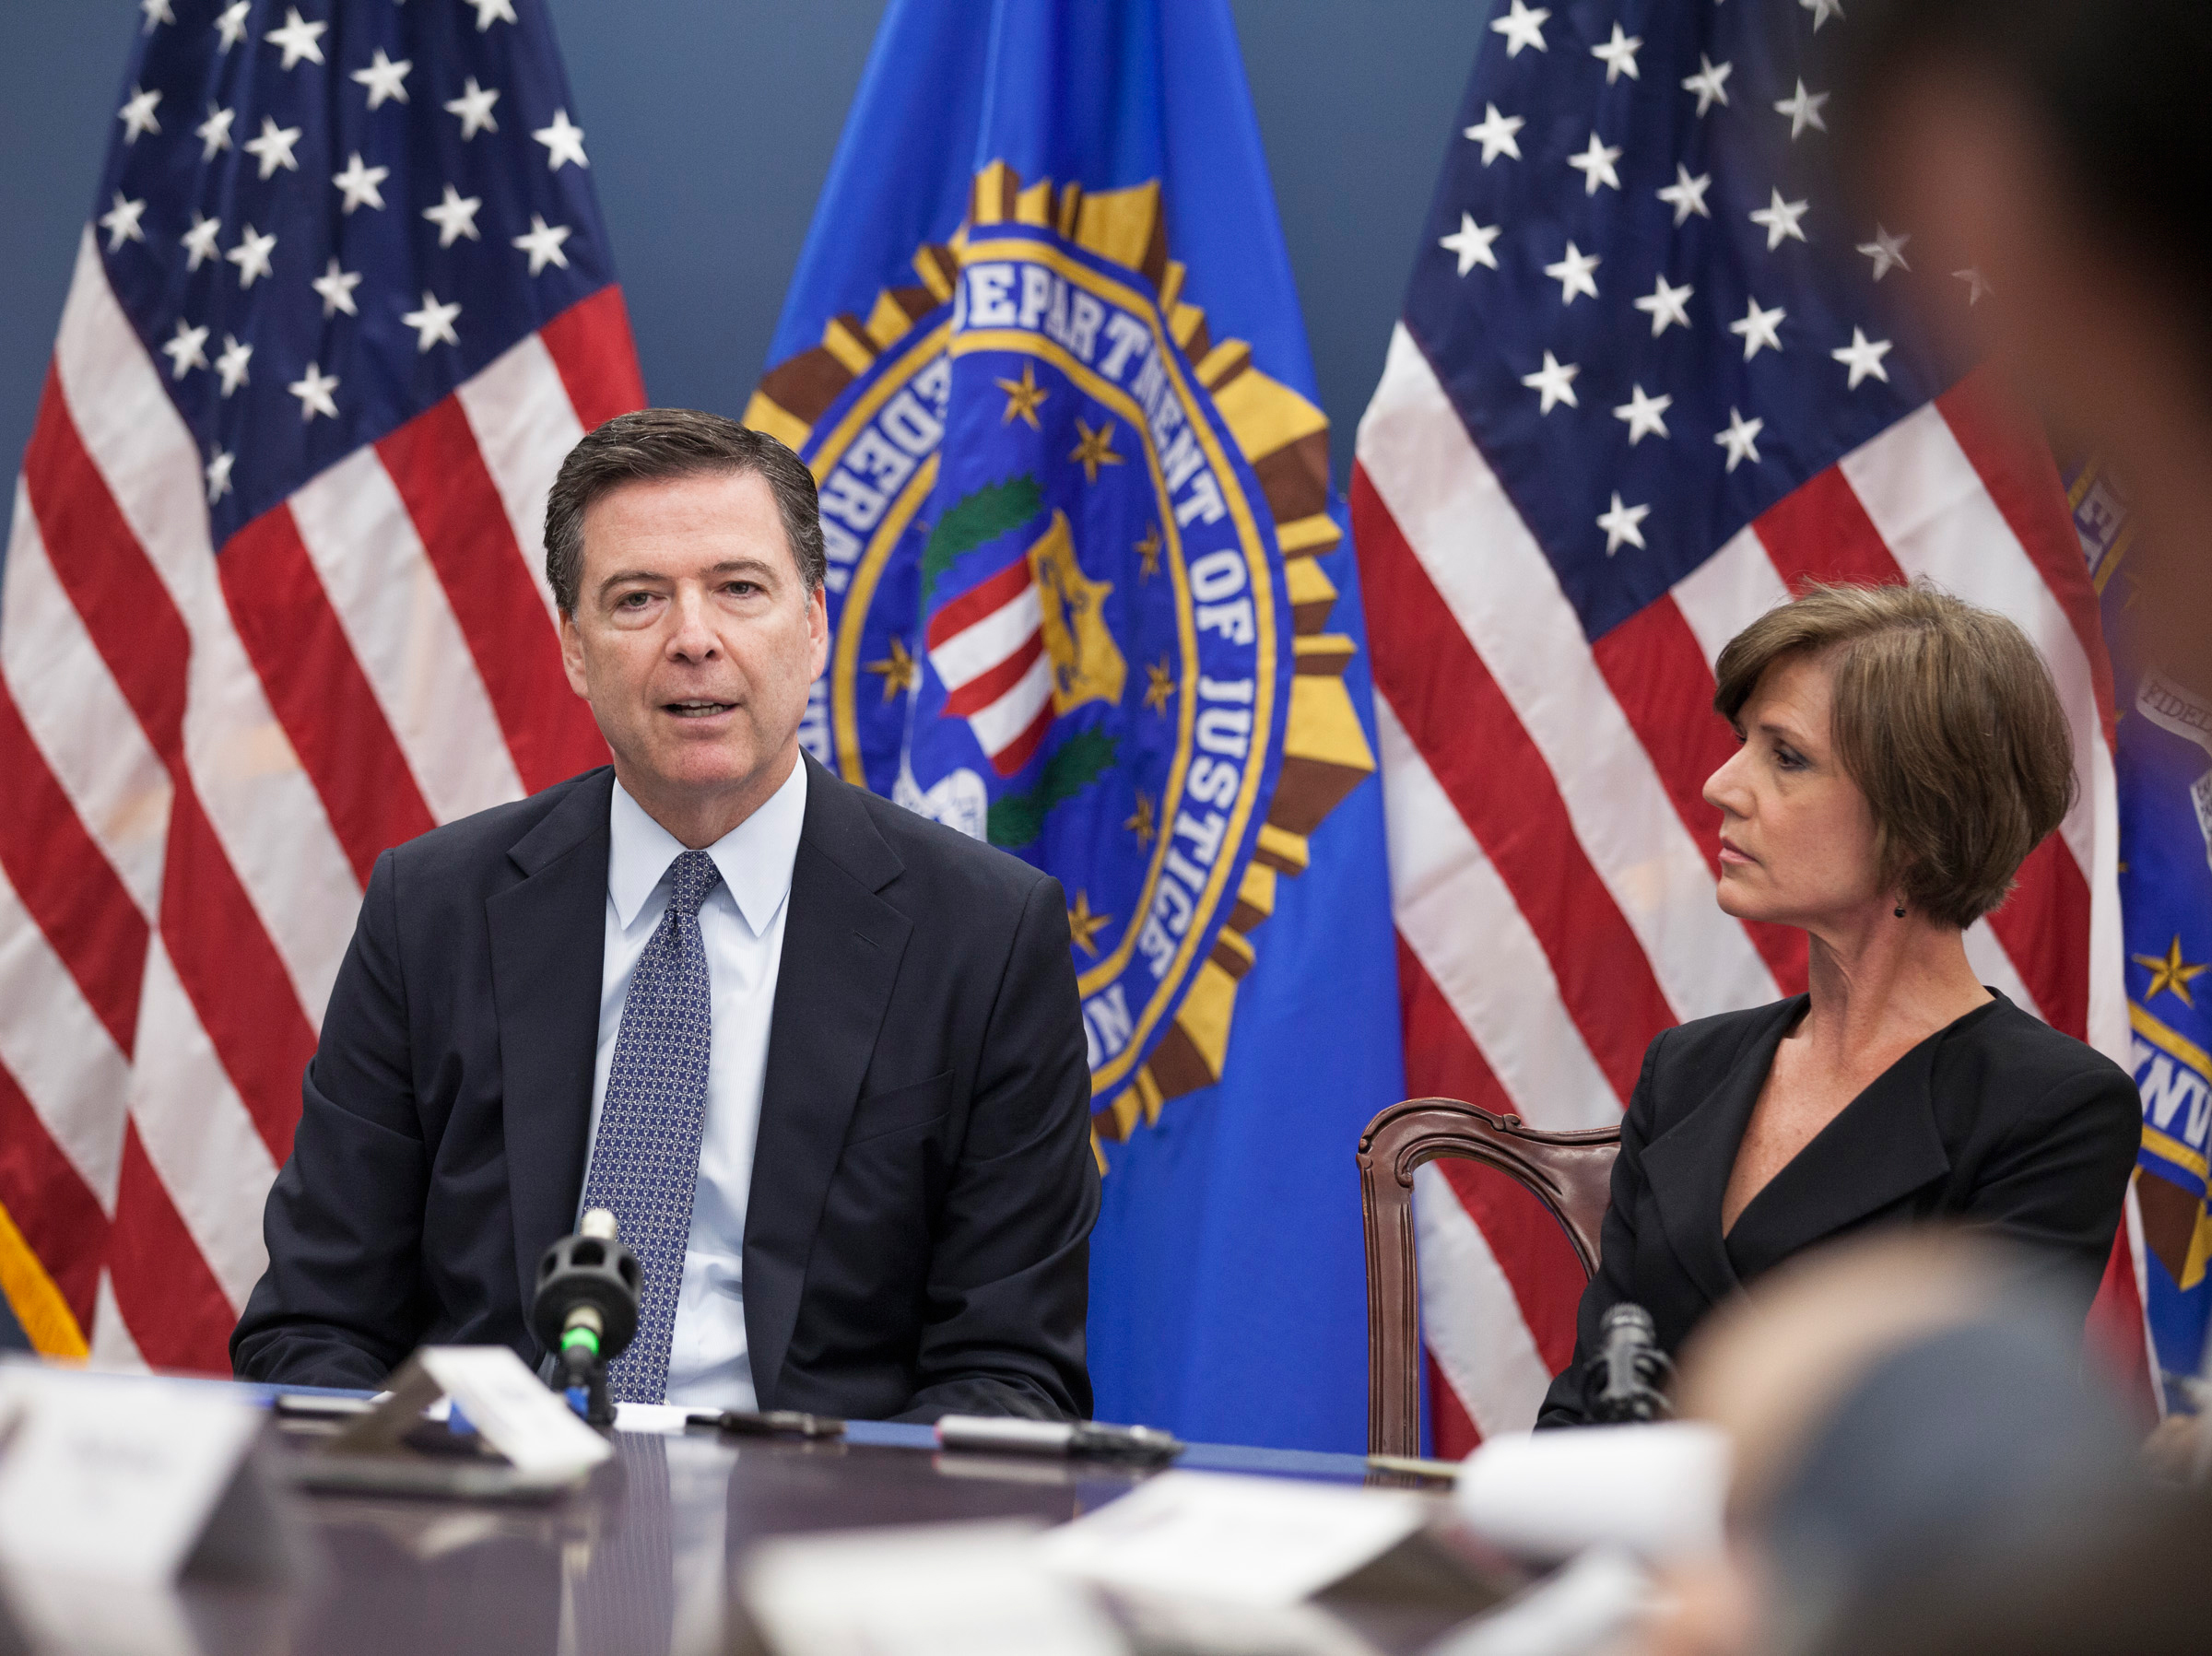 FBI director confirms investigation of Russia interference with US election